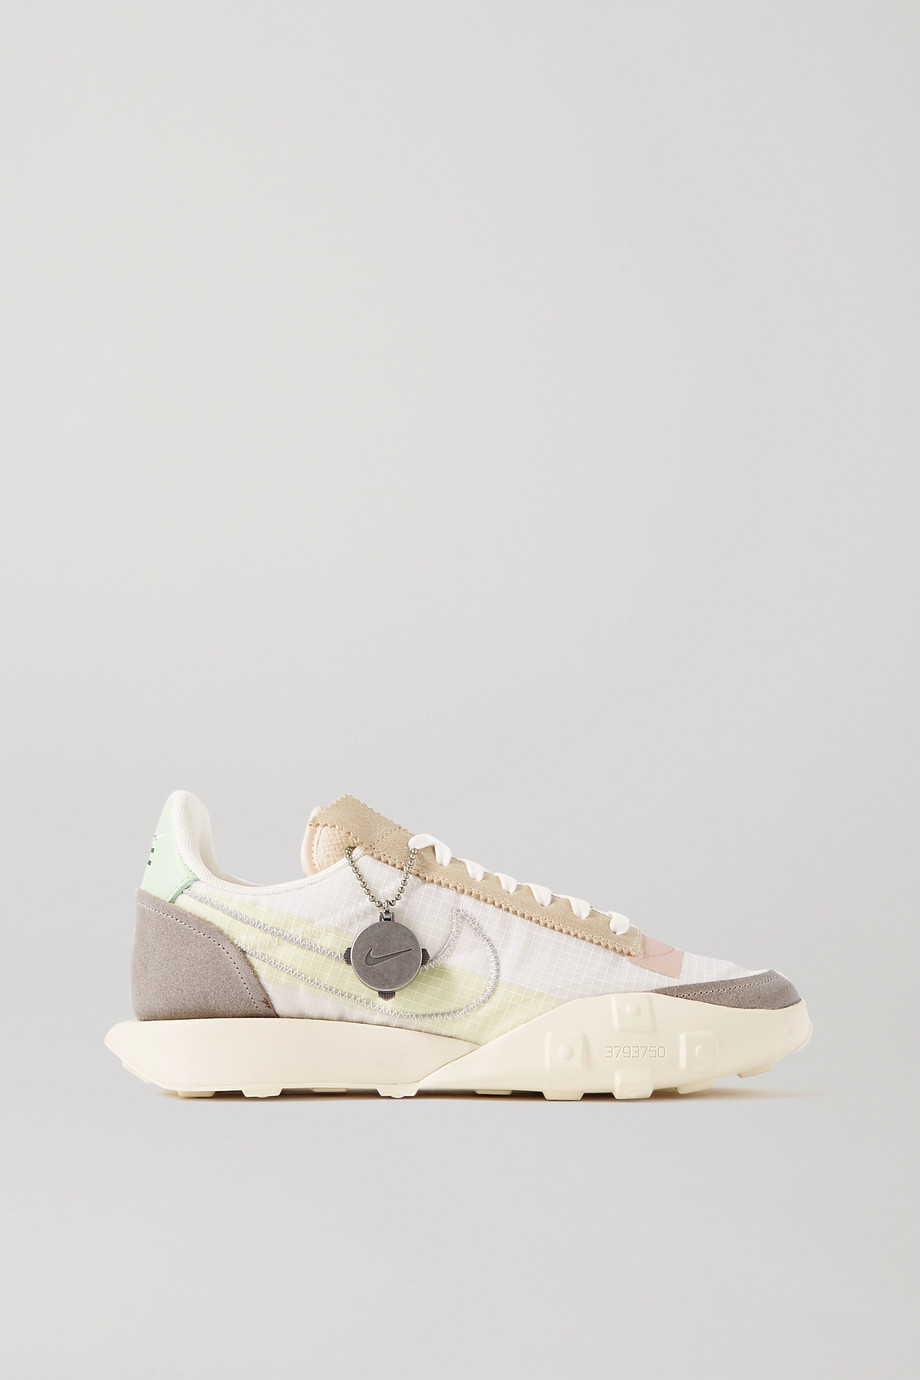 Nike Waffle Racer NRG leather-trimmed ripstop and suede sneakers